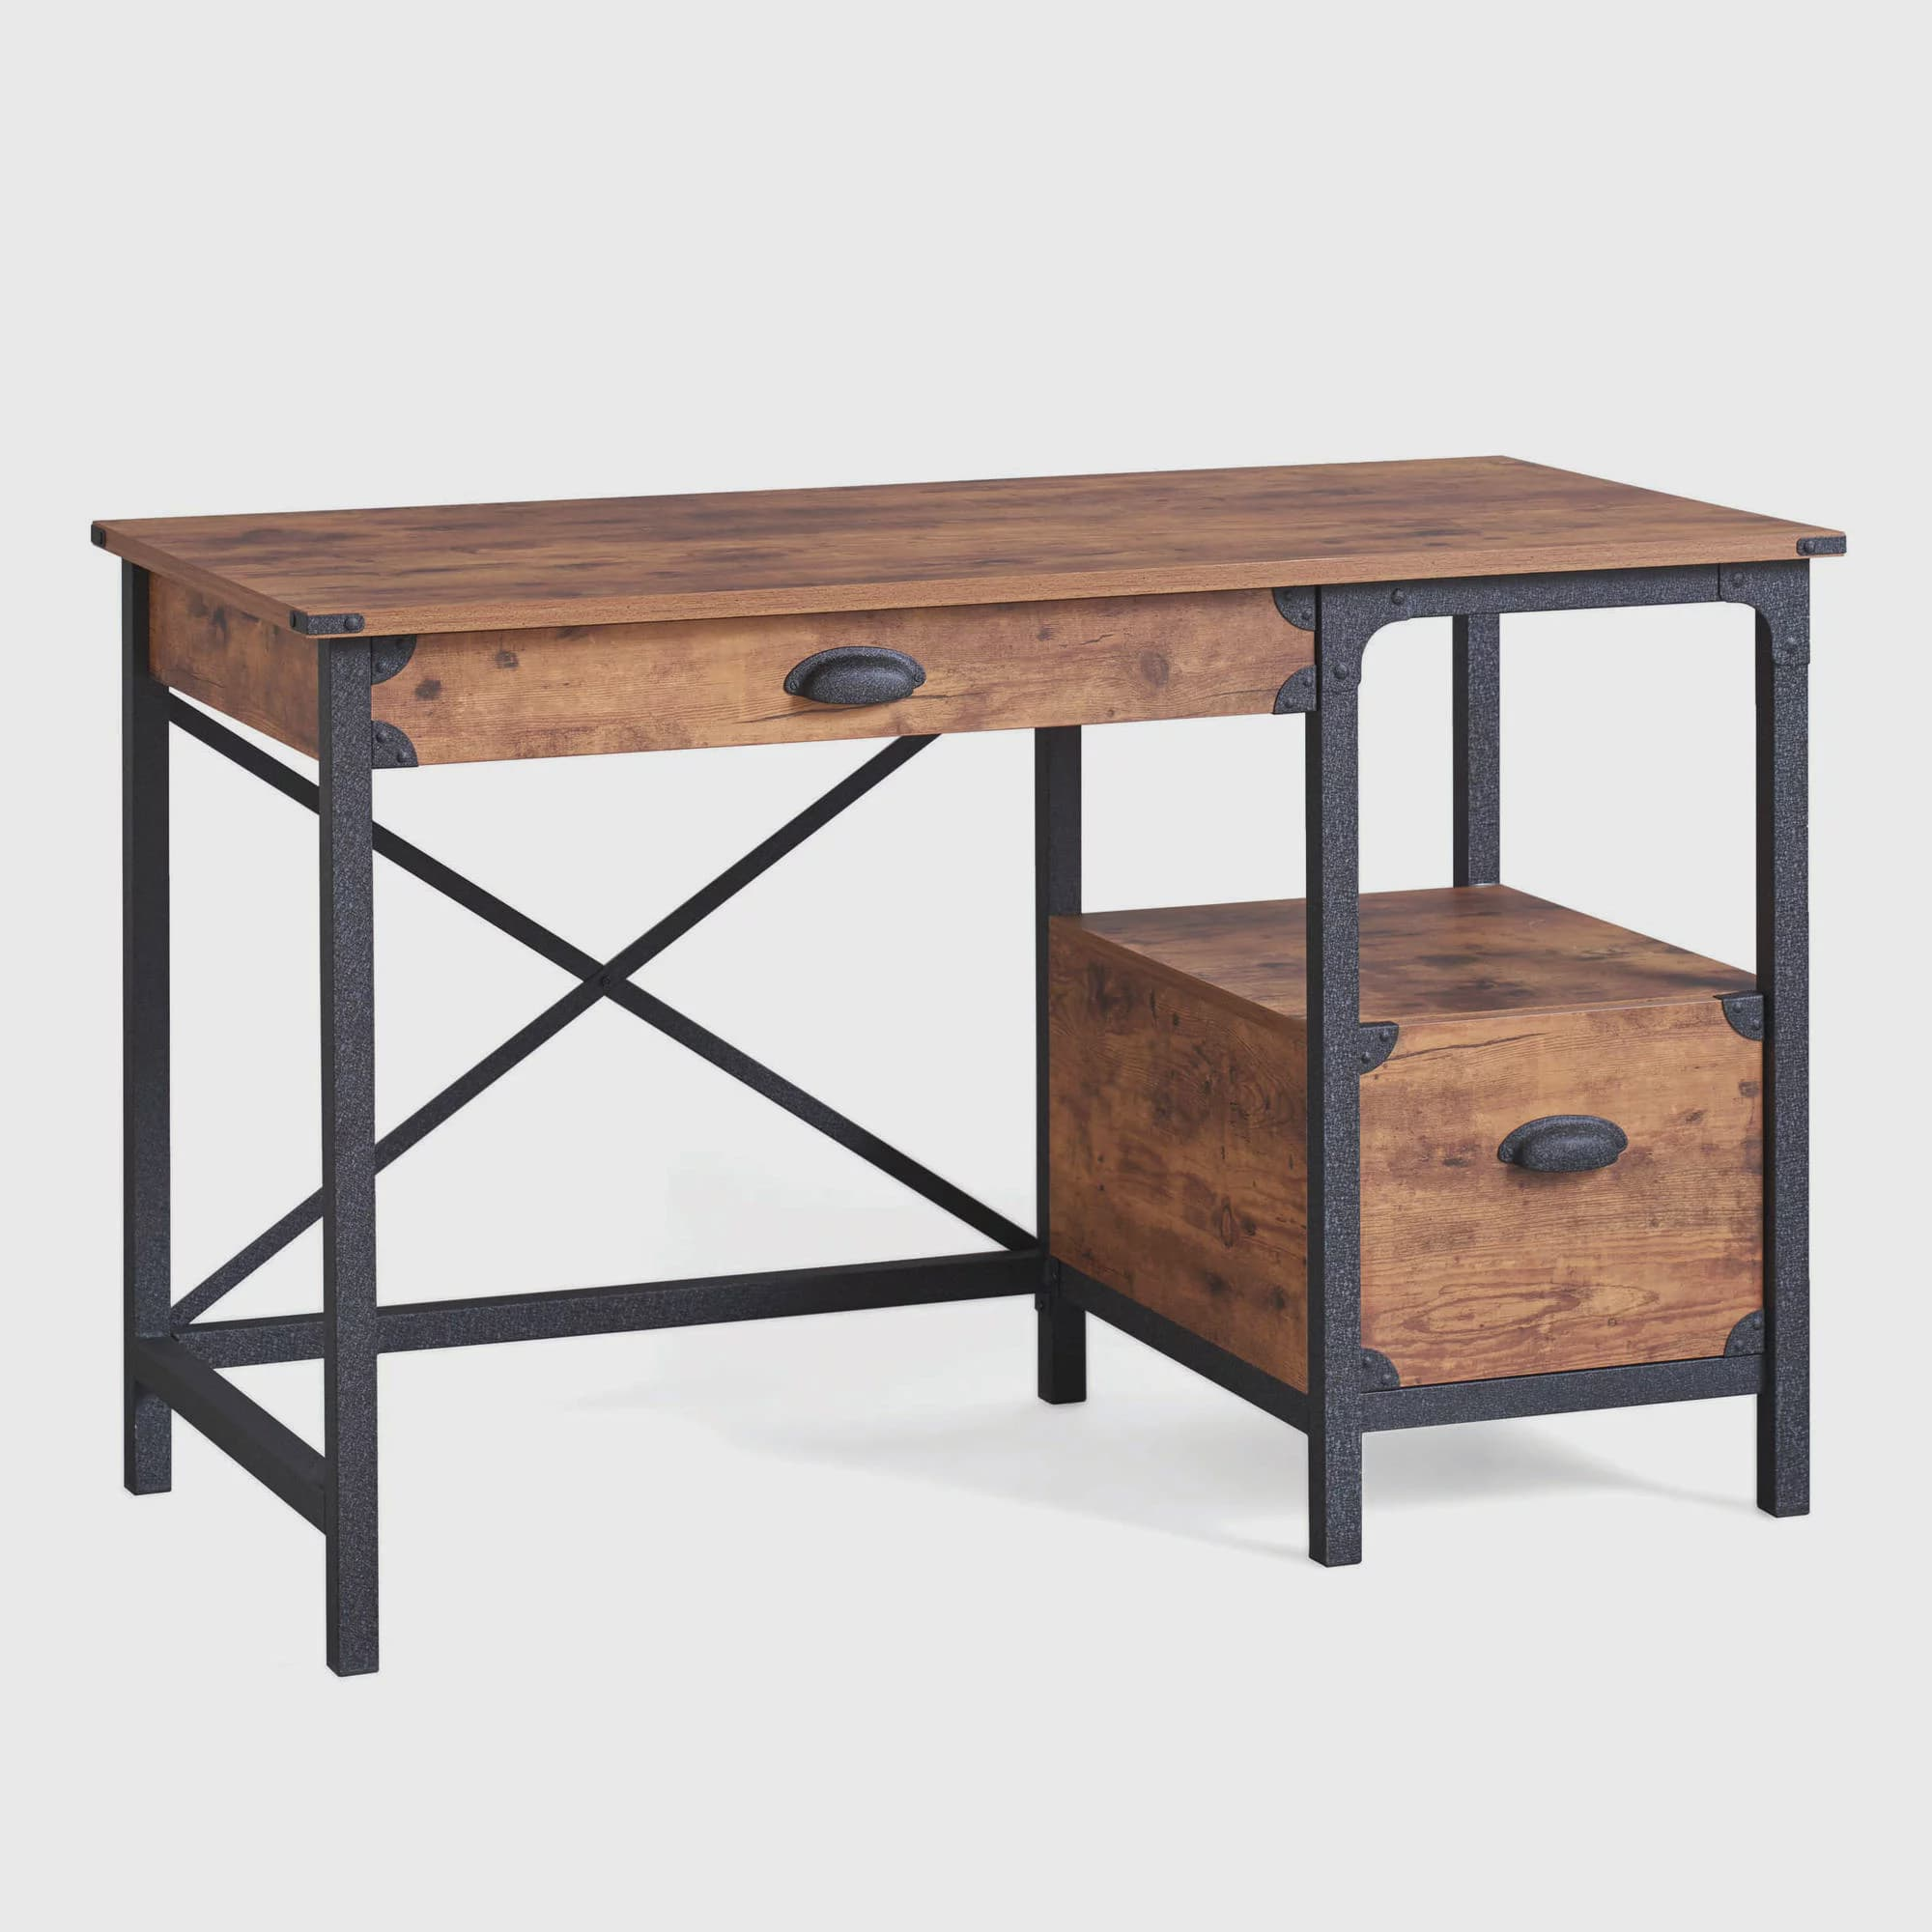 Better Homes And Gardens Rustic Country Desk, Weathered Pine Finish    Walmart.com Design Inspirations